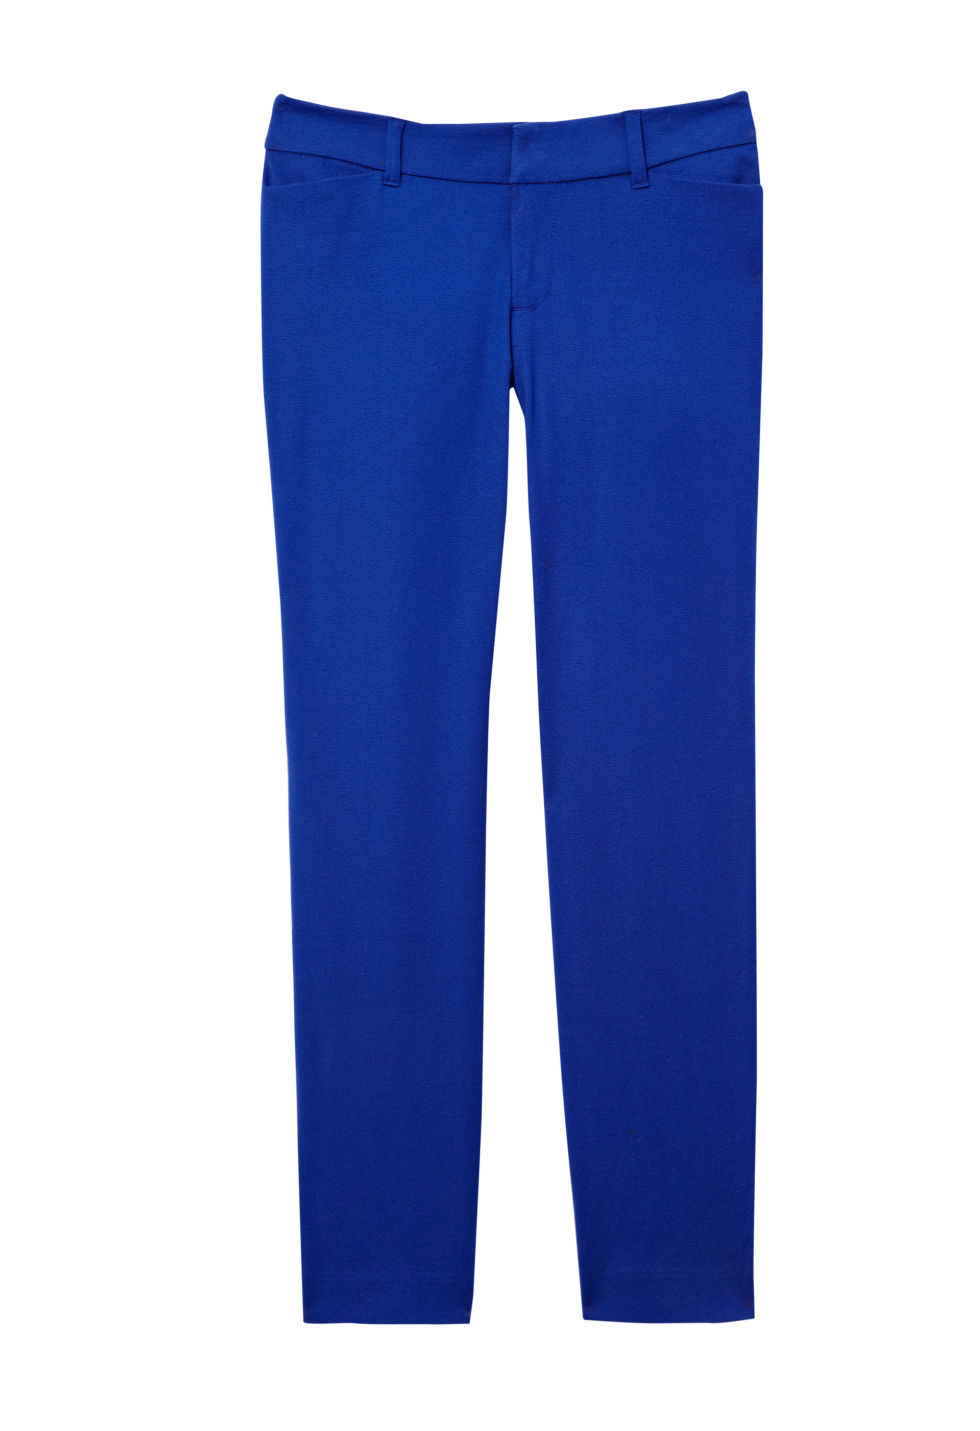 What To Wear with Blue Pants - Cobalt Blue Pants for Women